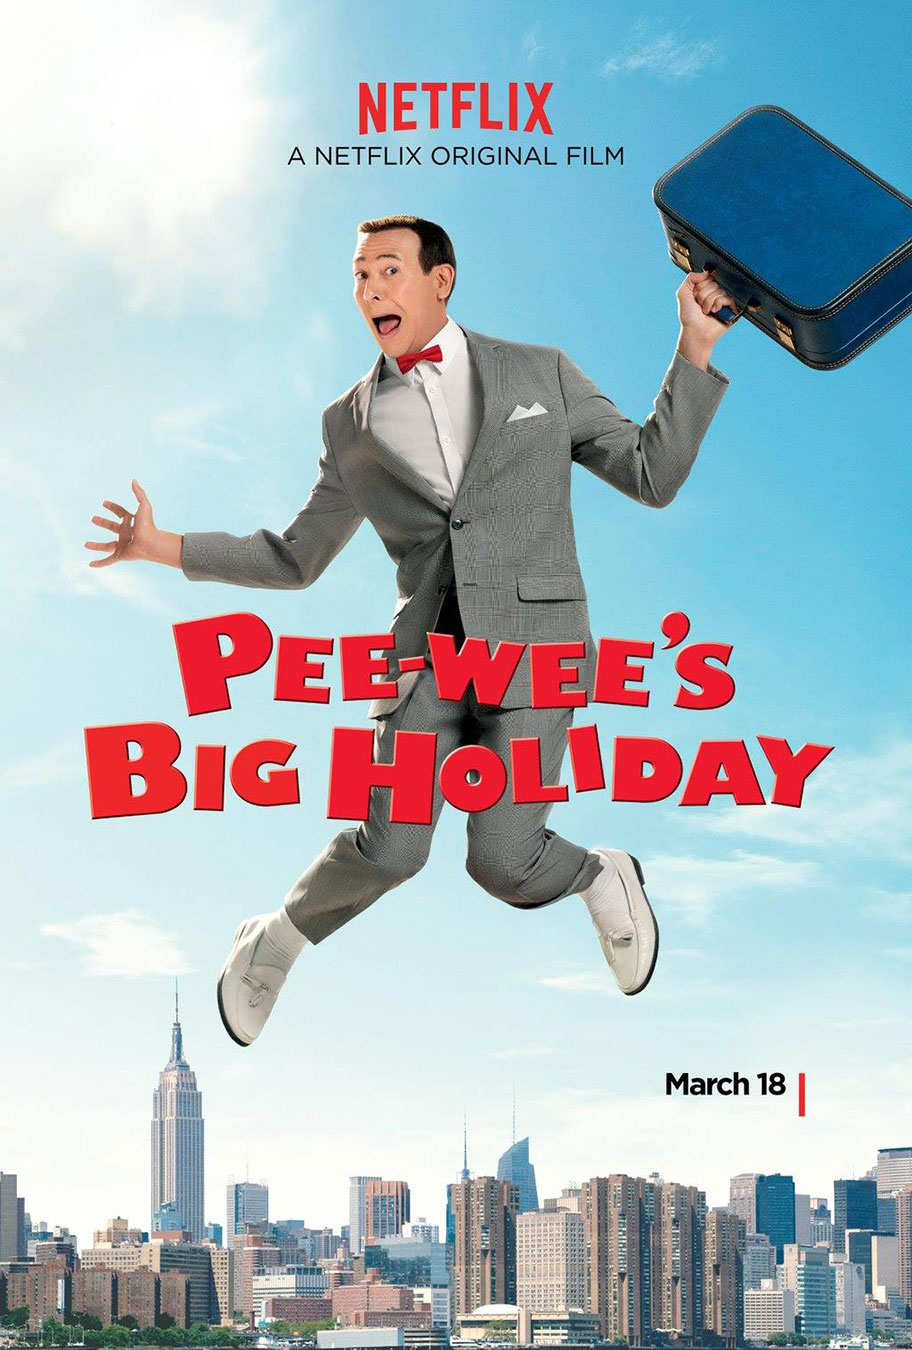 Netflix Pee-wee's Big Holiday Movie Poster